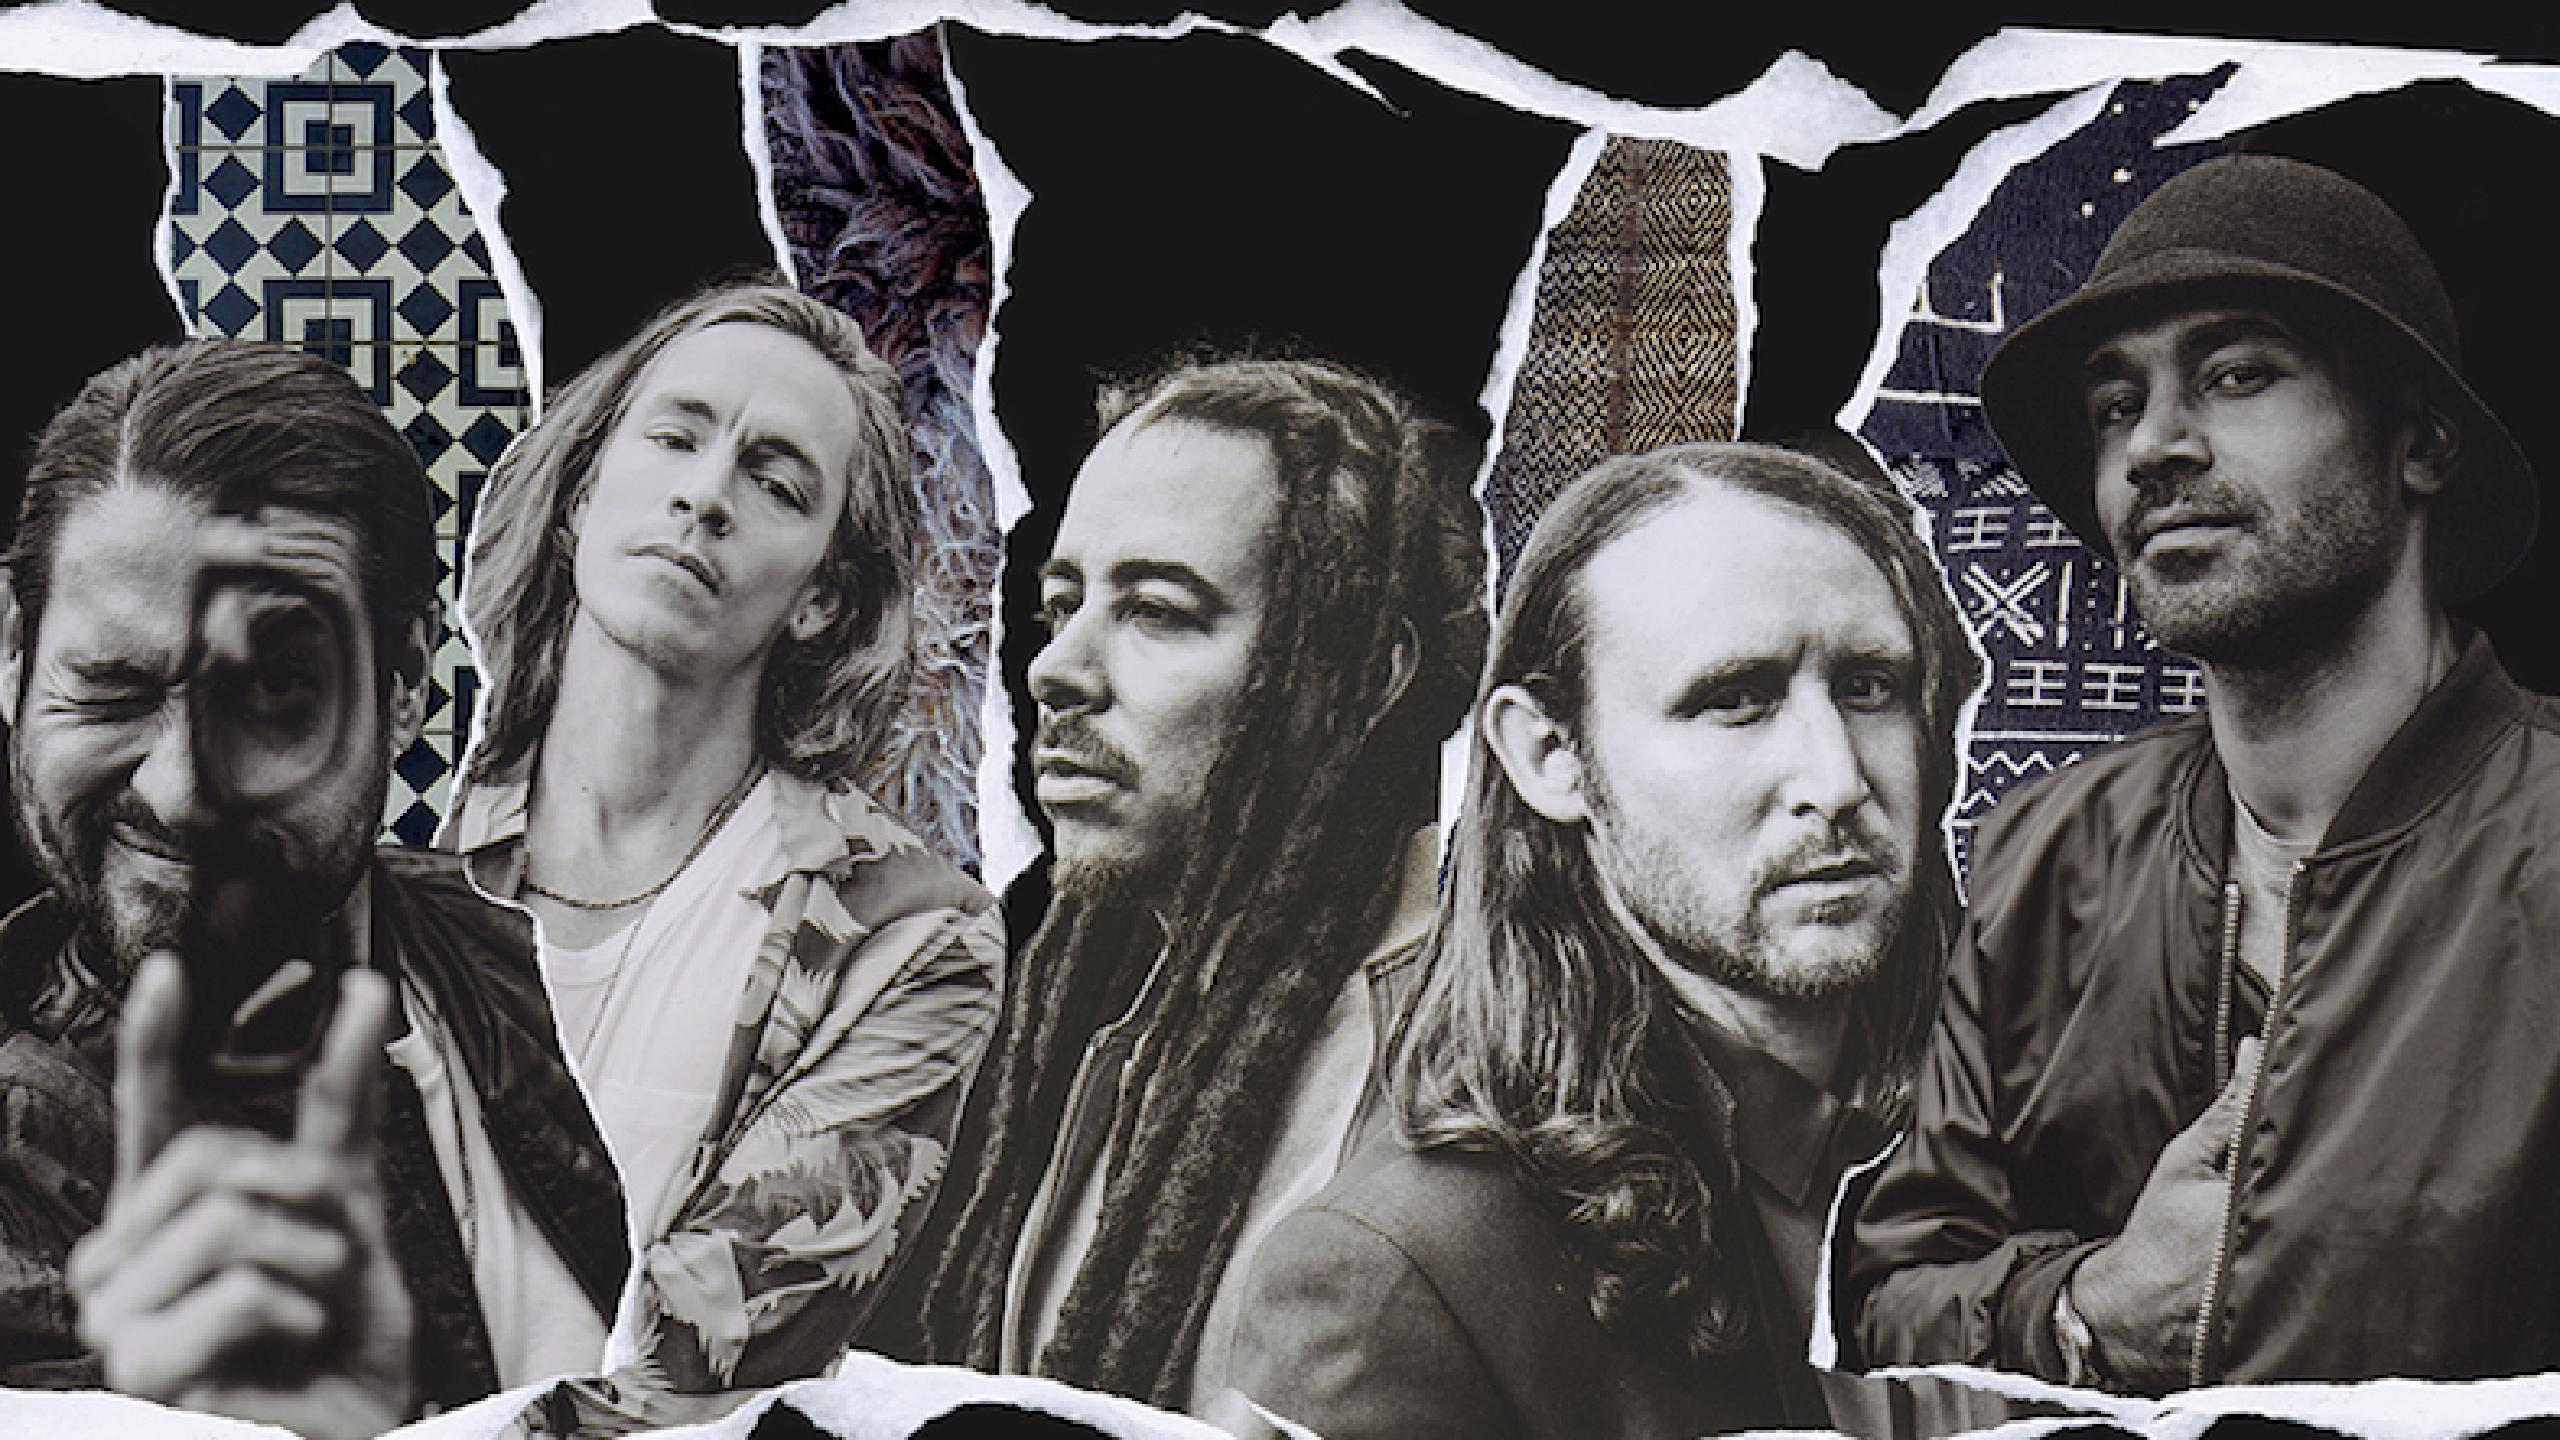 Incubus, 311 & Badflower at DTE Energy Music Theatre